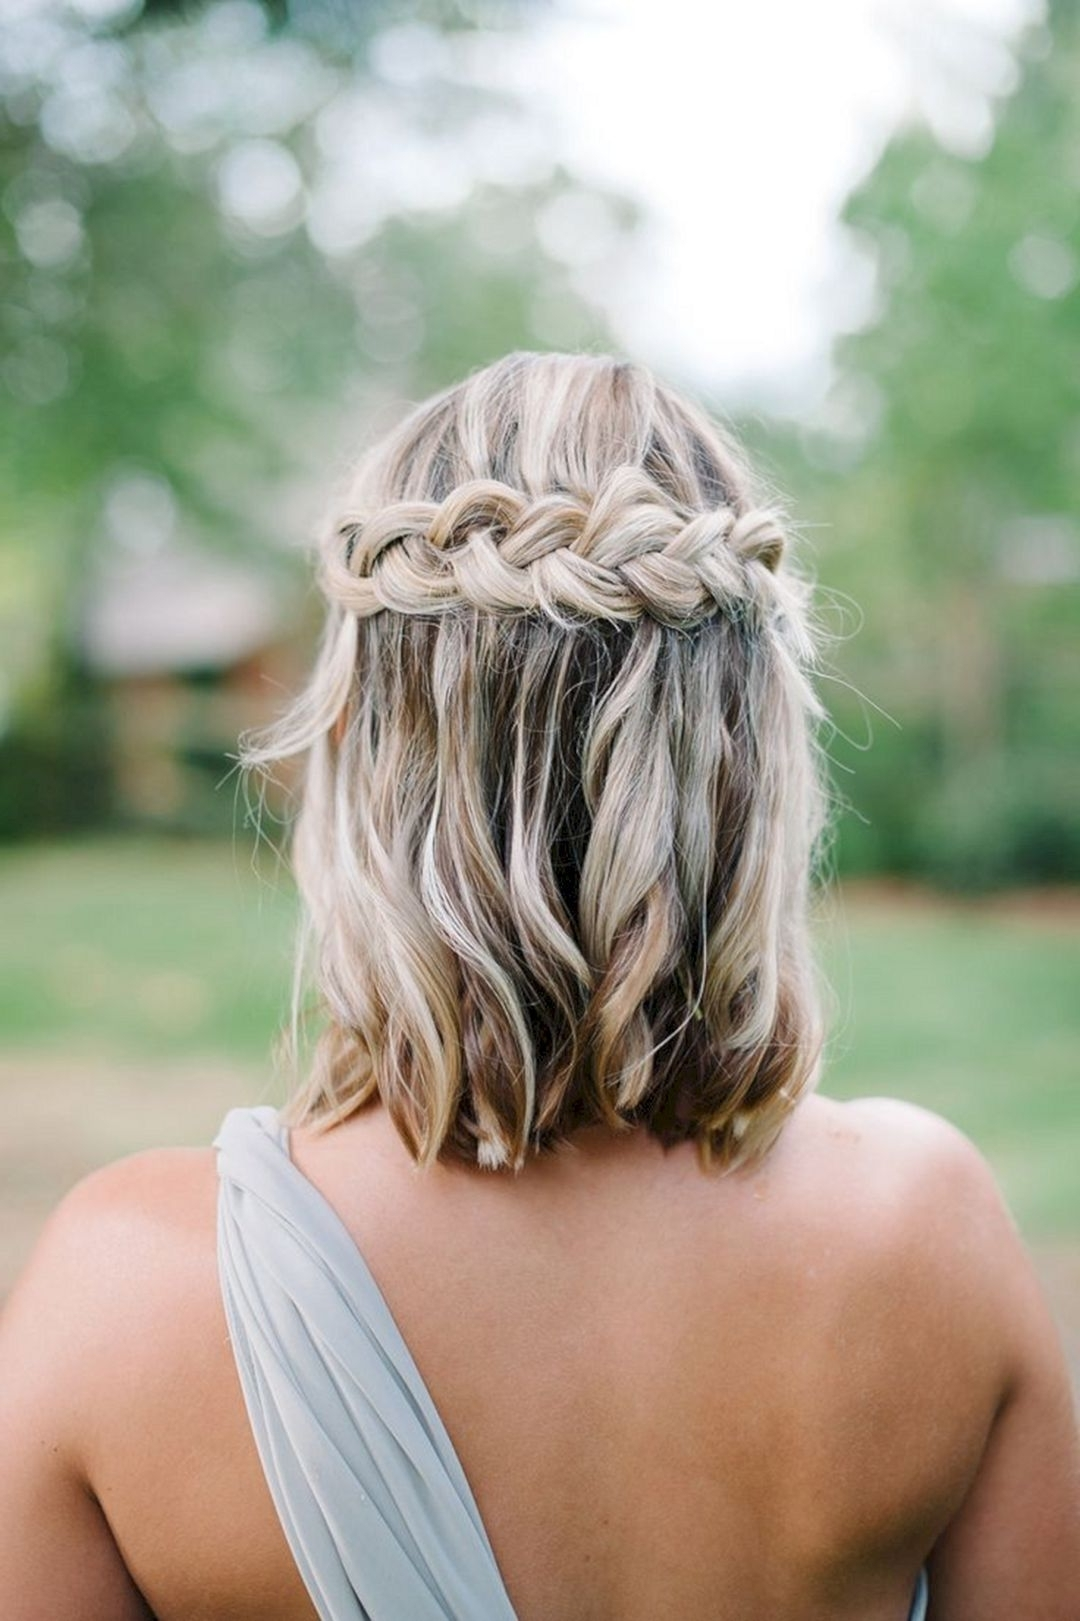 Unbelievable Bridesmaid Hairstyles For Medium Length Hair U Oosile Throughout Fashionable Wedding Hairstyles For Medium Length Hair (Gallery 15 of 15)